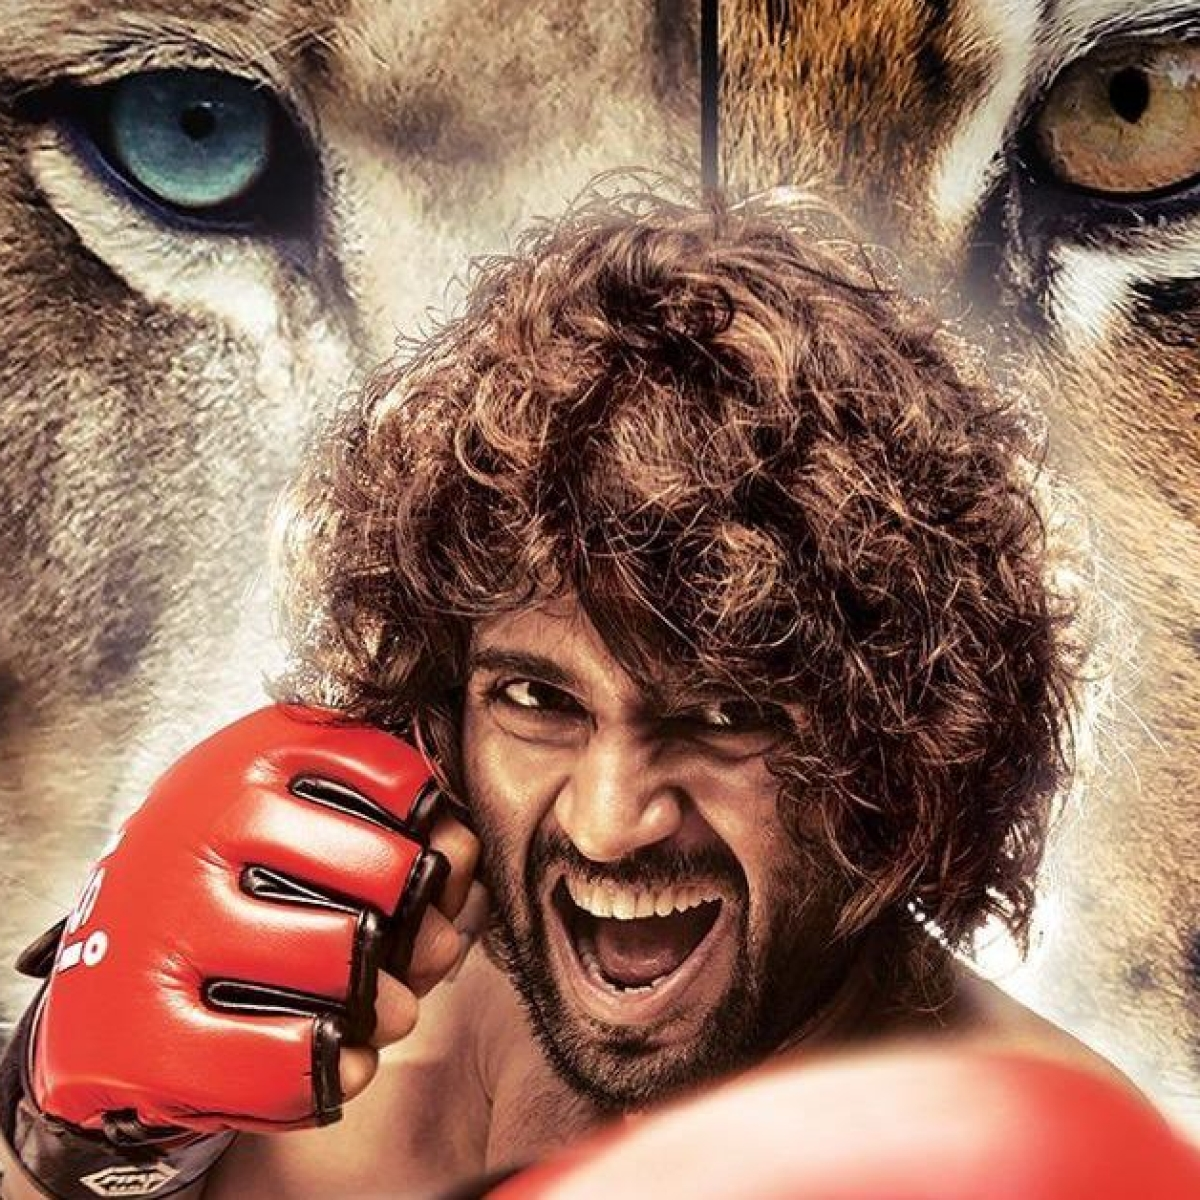 Liger: Makers of Vijay Deverakonda, Ananya Panday starrer postpone film's teaser release, here's why